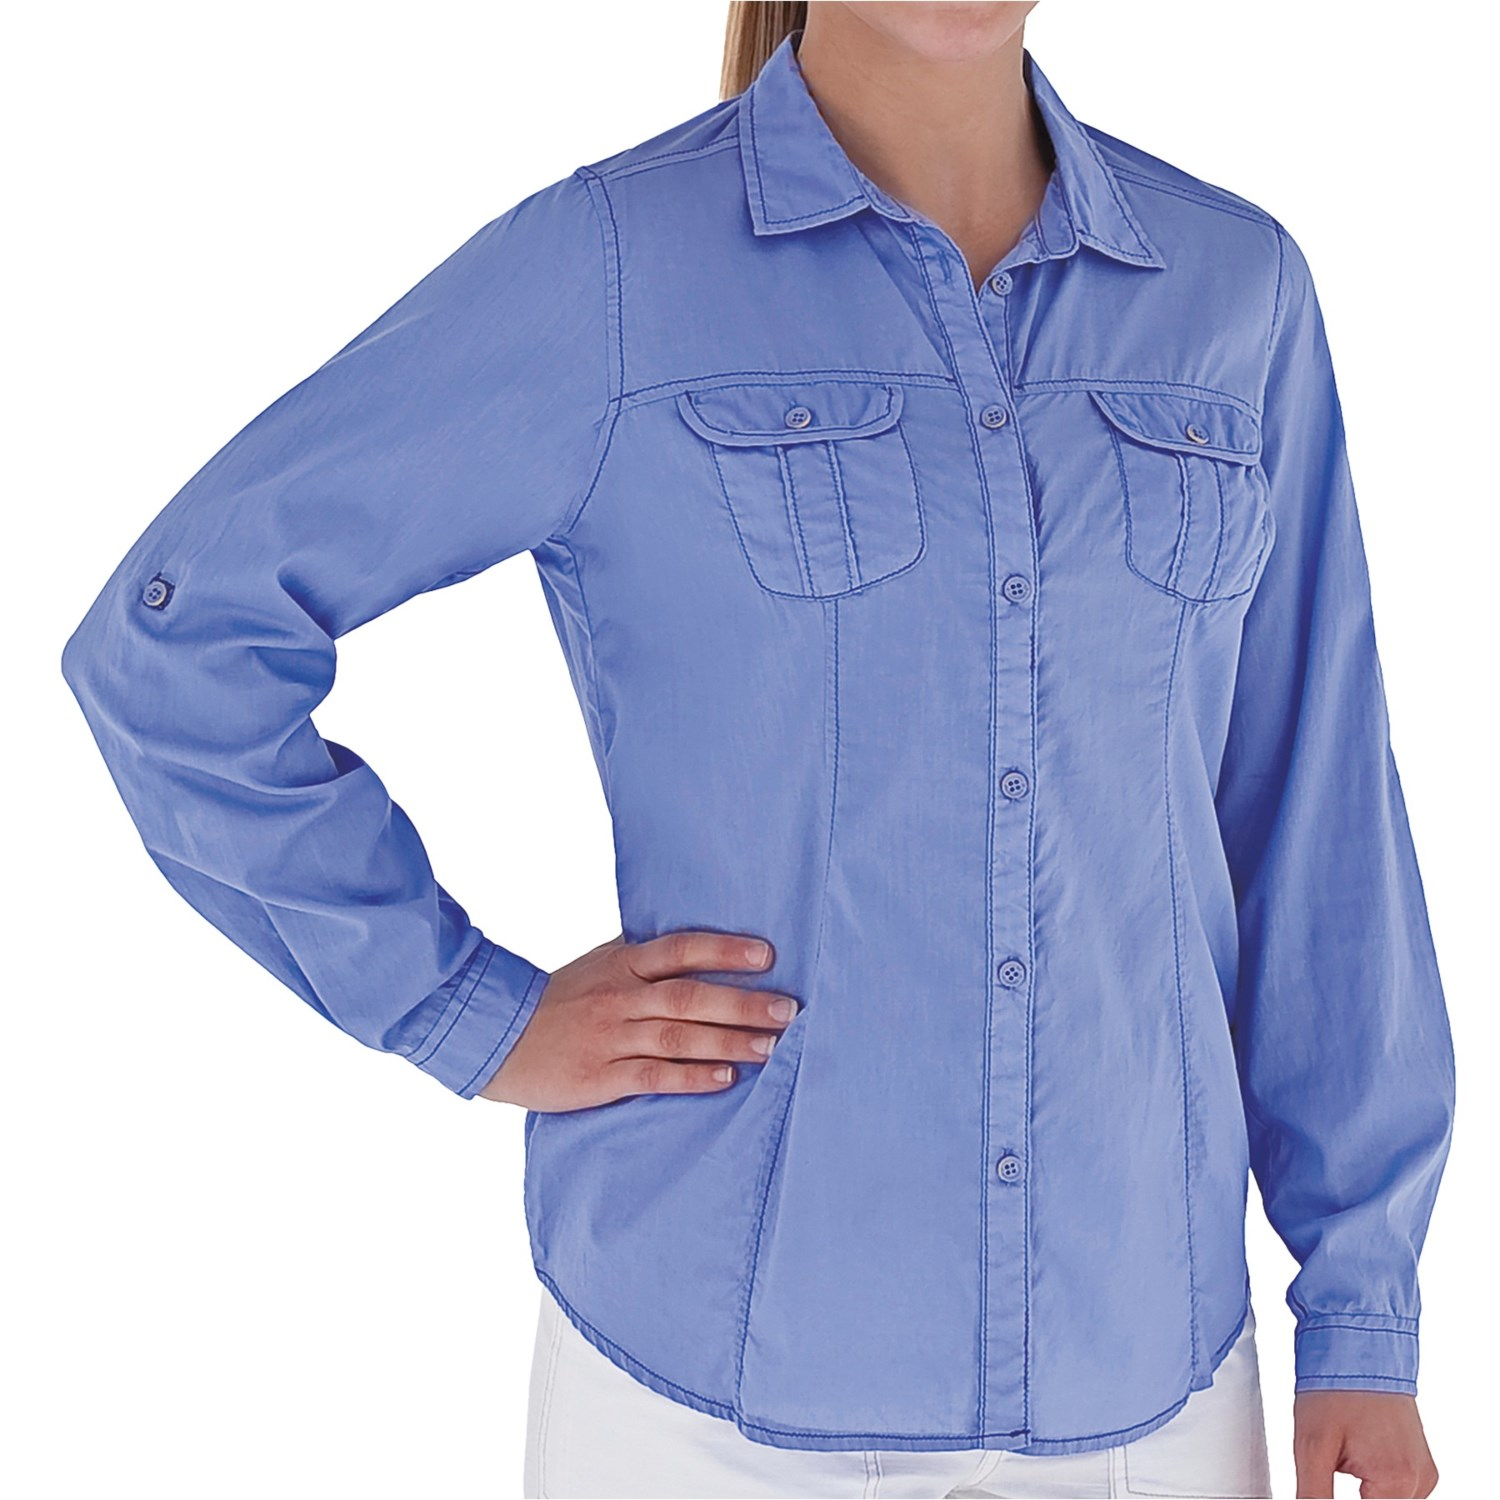 Royal robbins summer camp shirt long sleeve for women for Women s long sleeve camp shirts